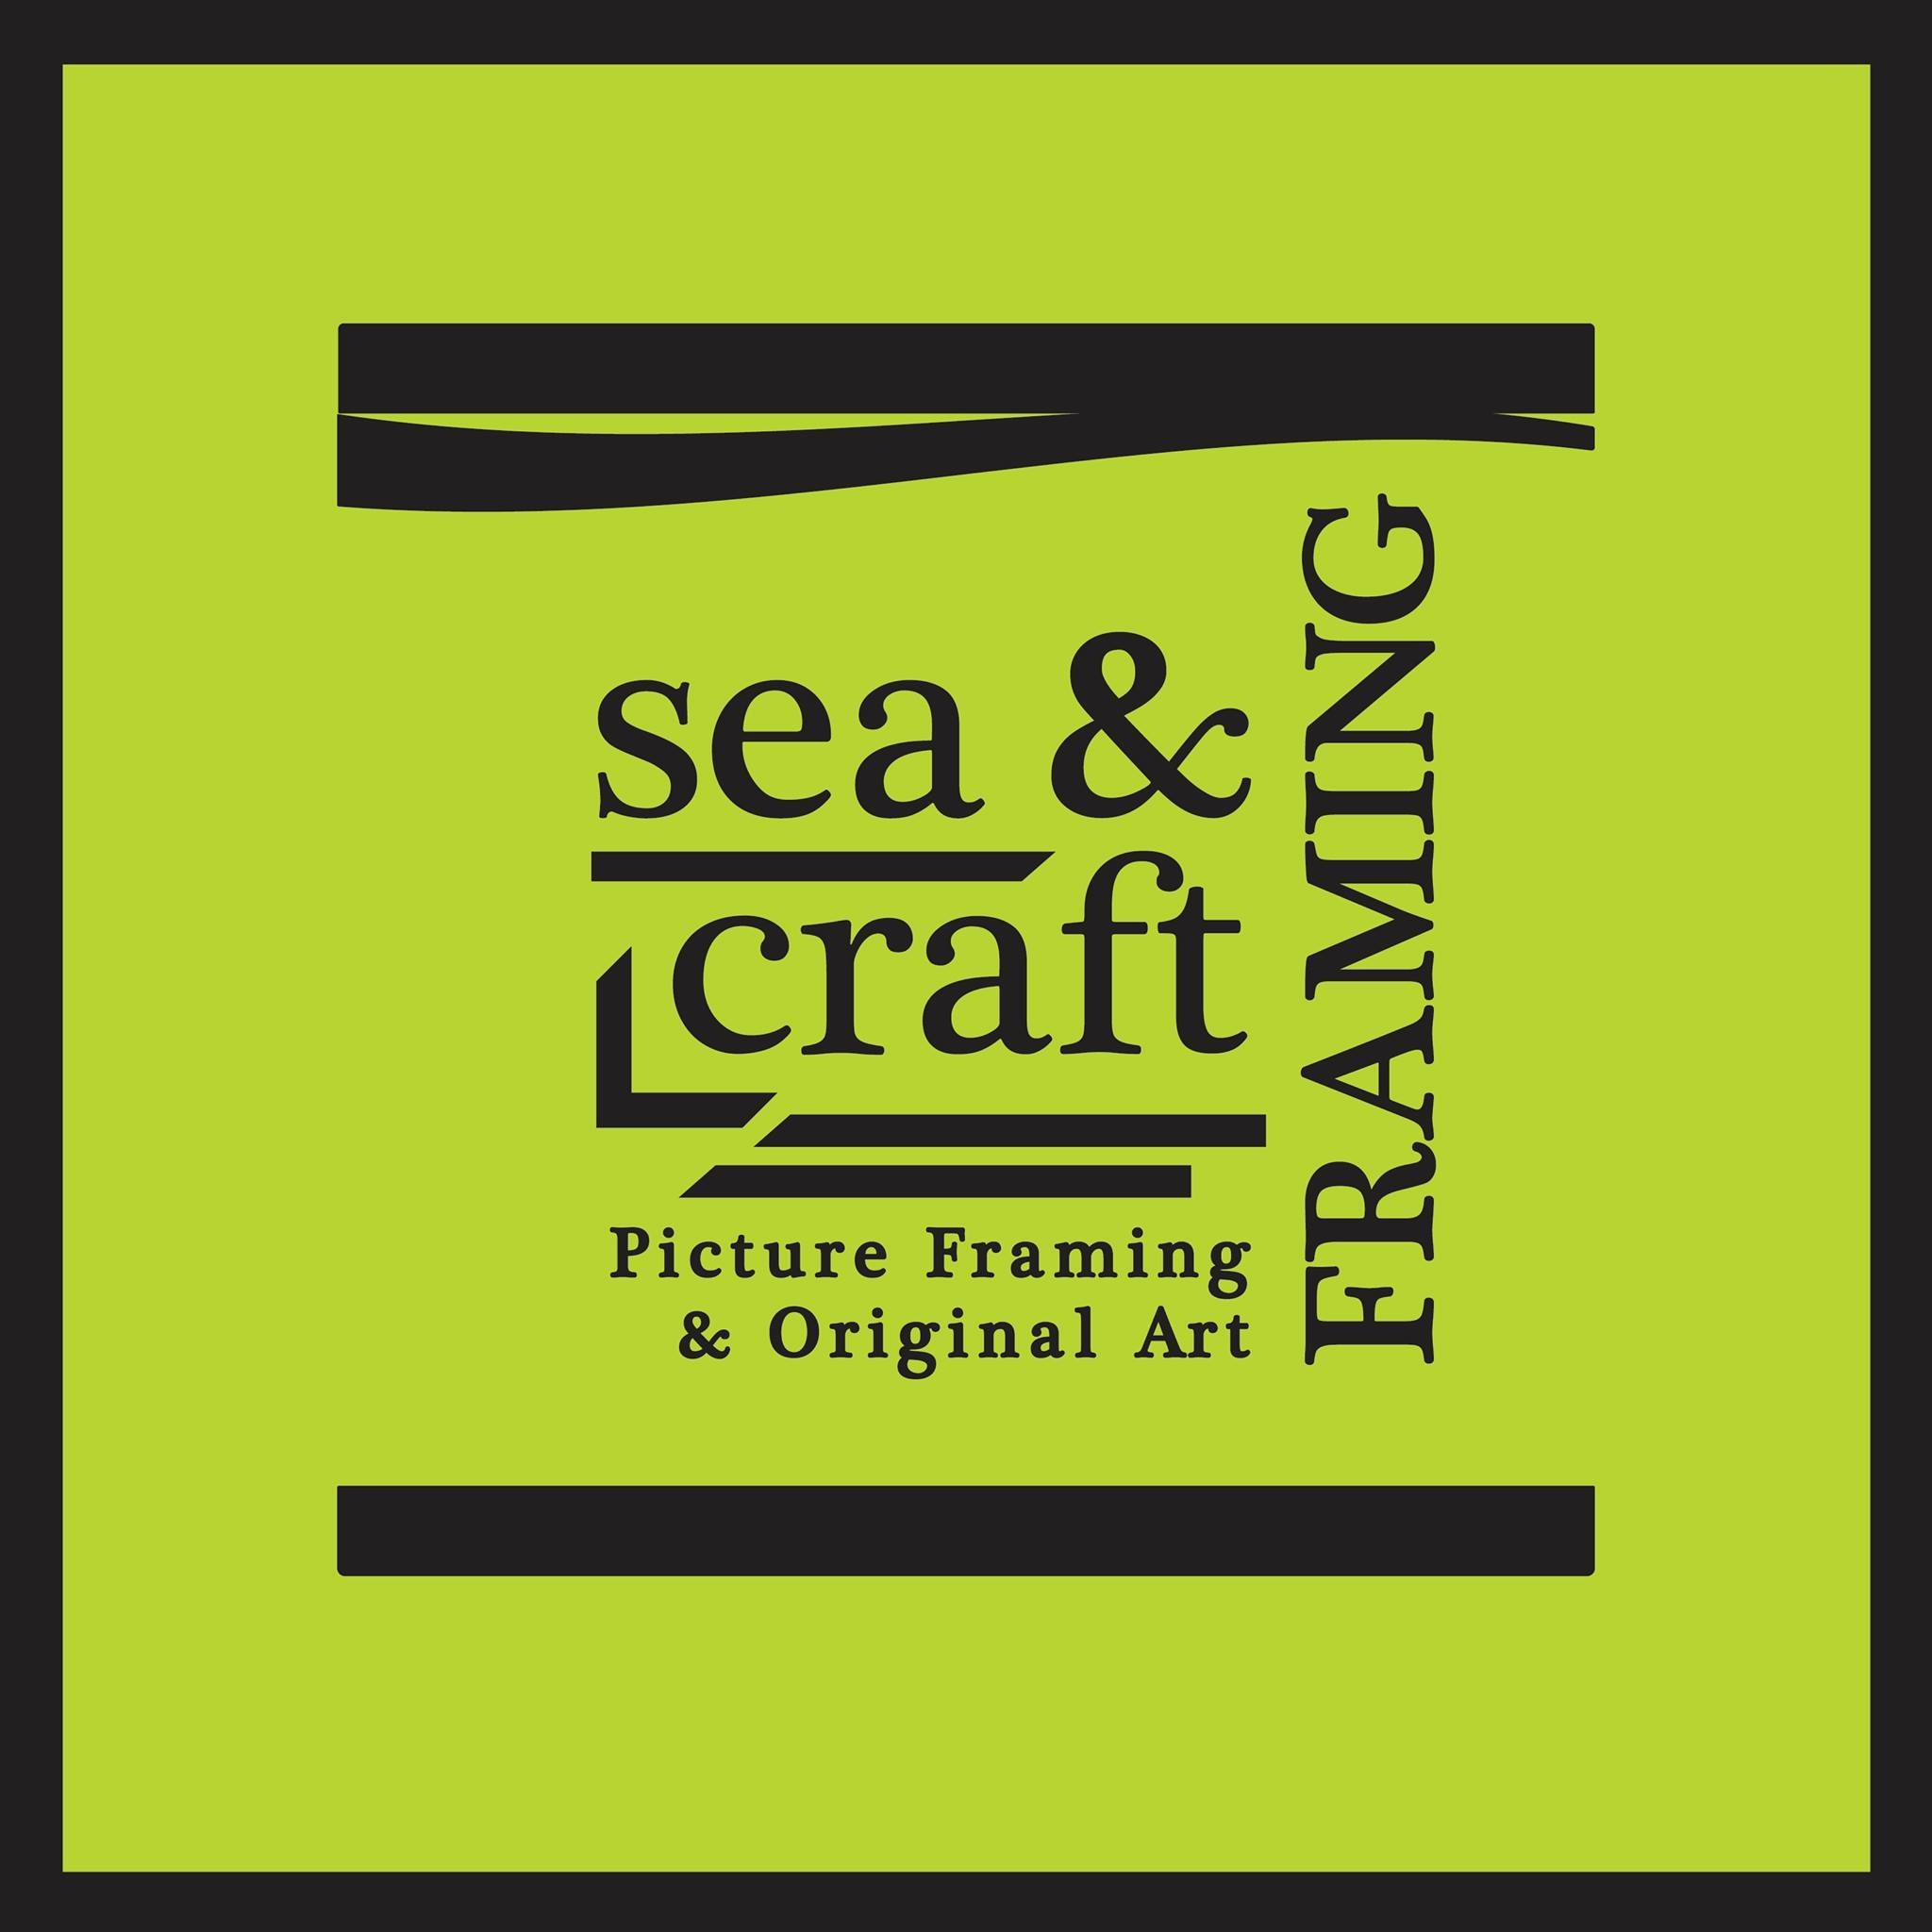 Sea & Craft Framing logo